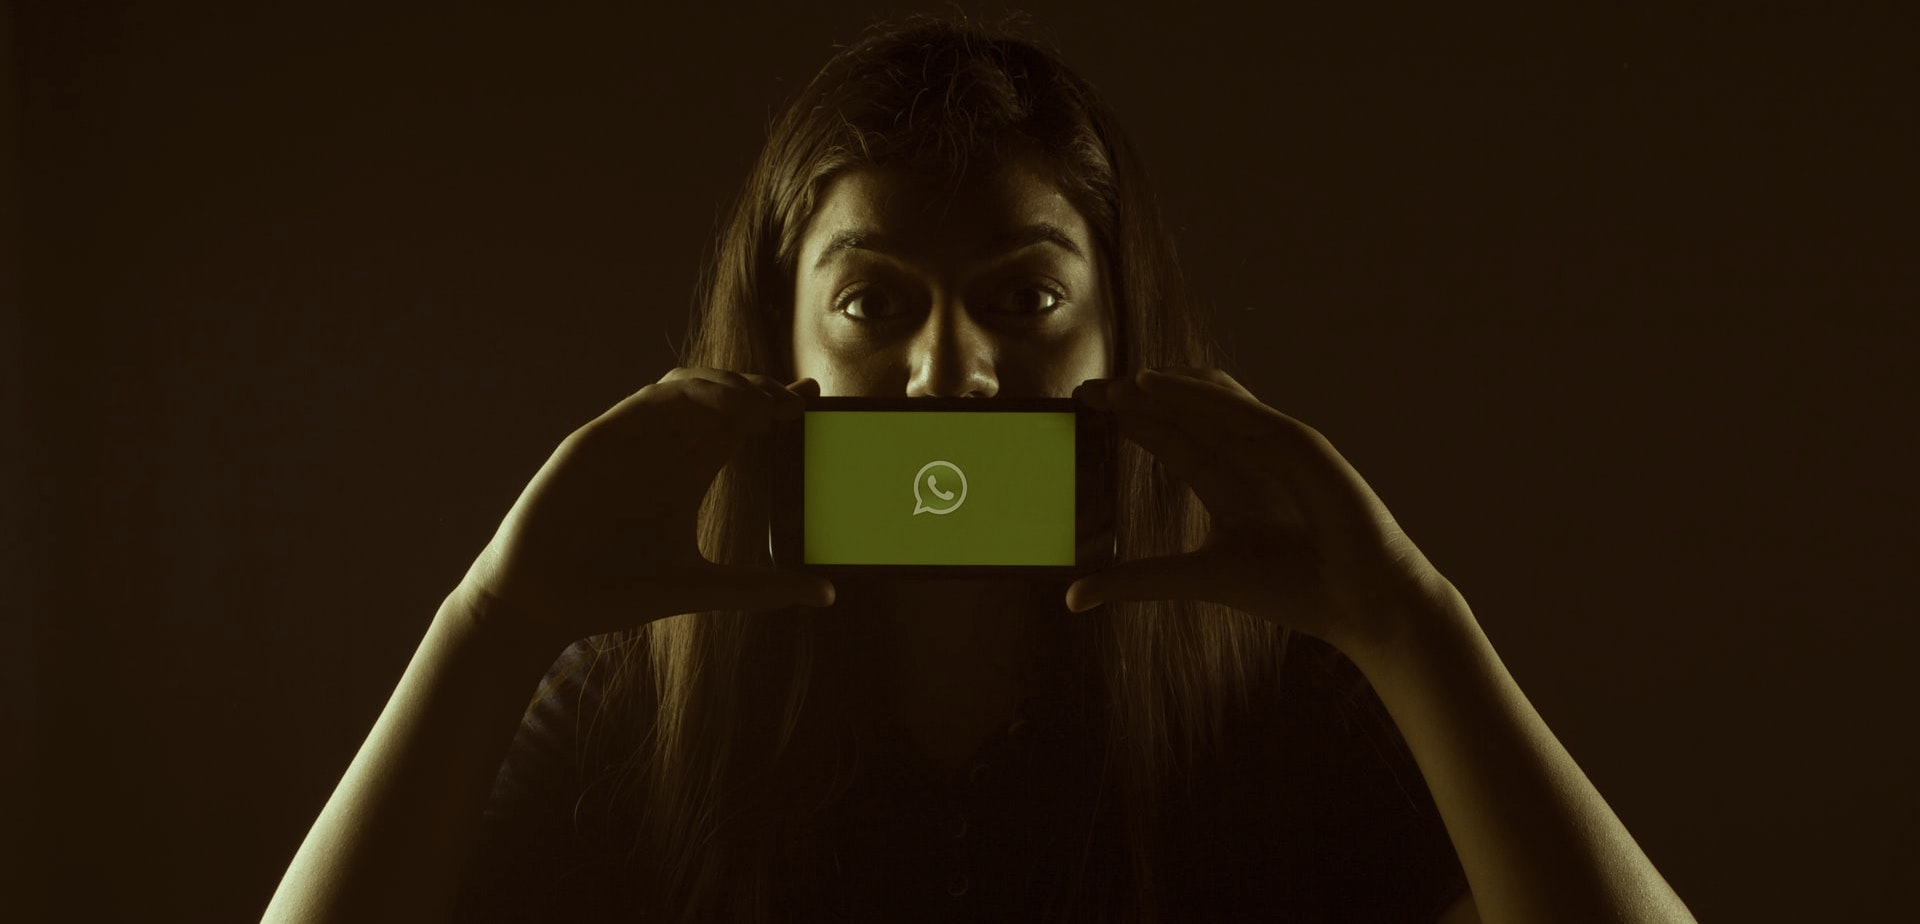 My friend's Whatsapp was hacked – and how you can avoid it